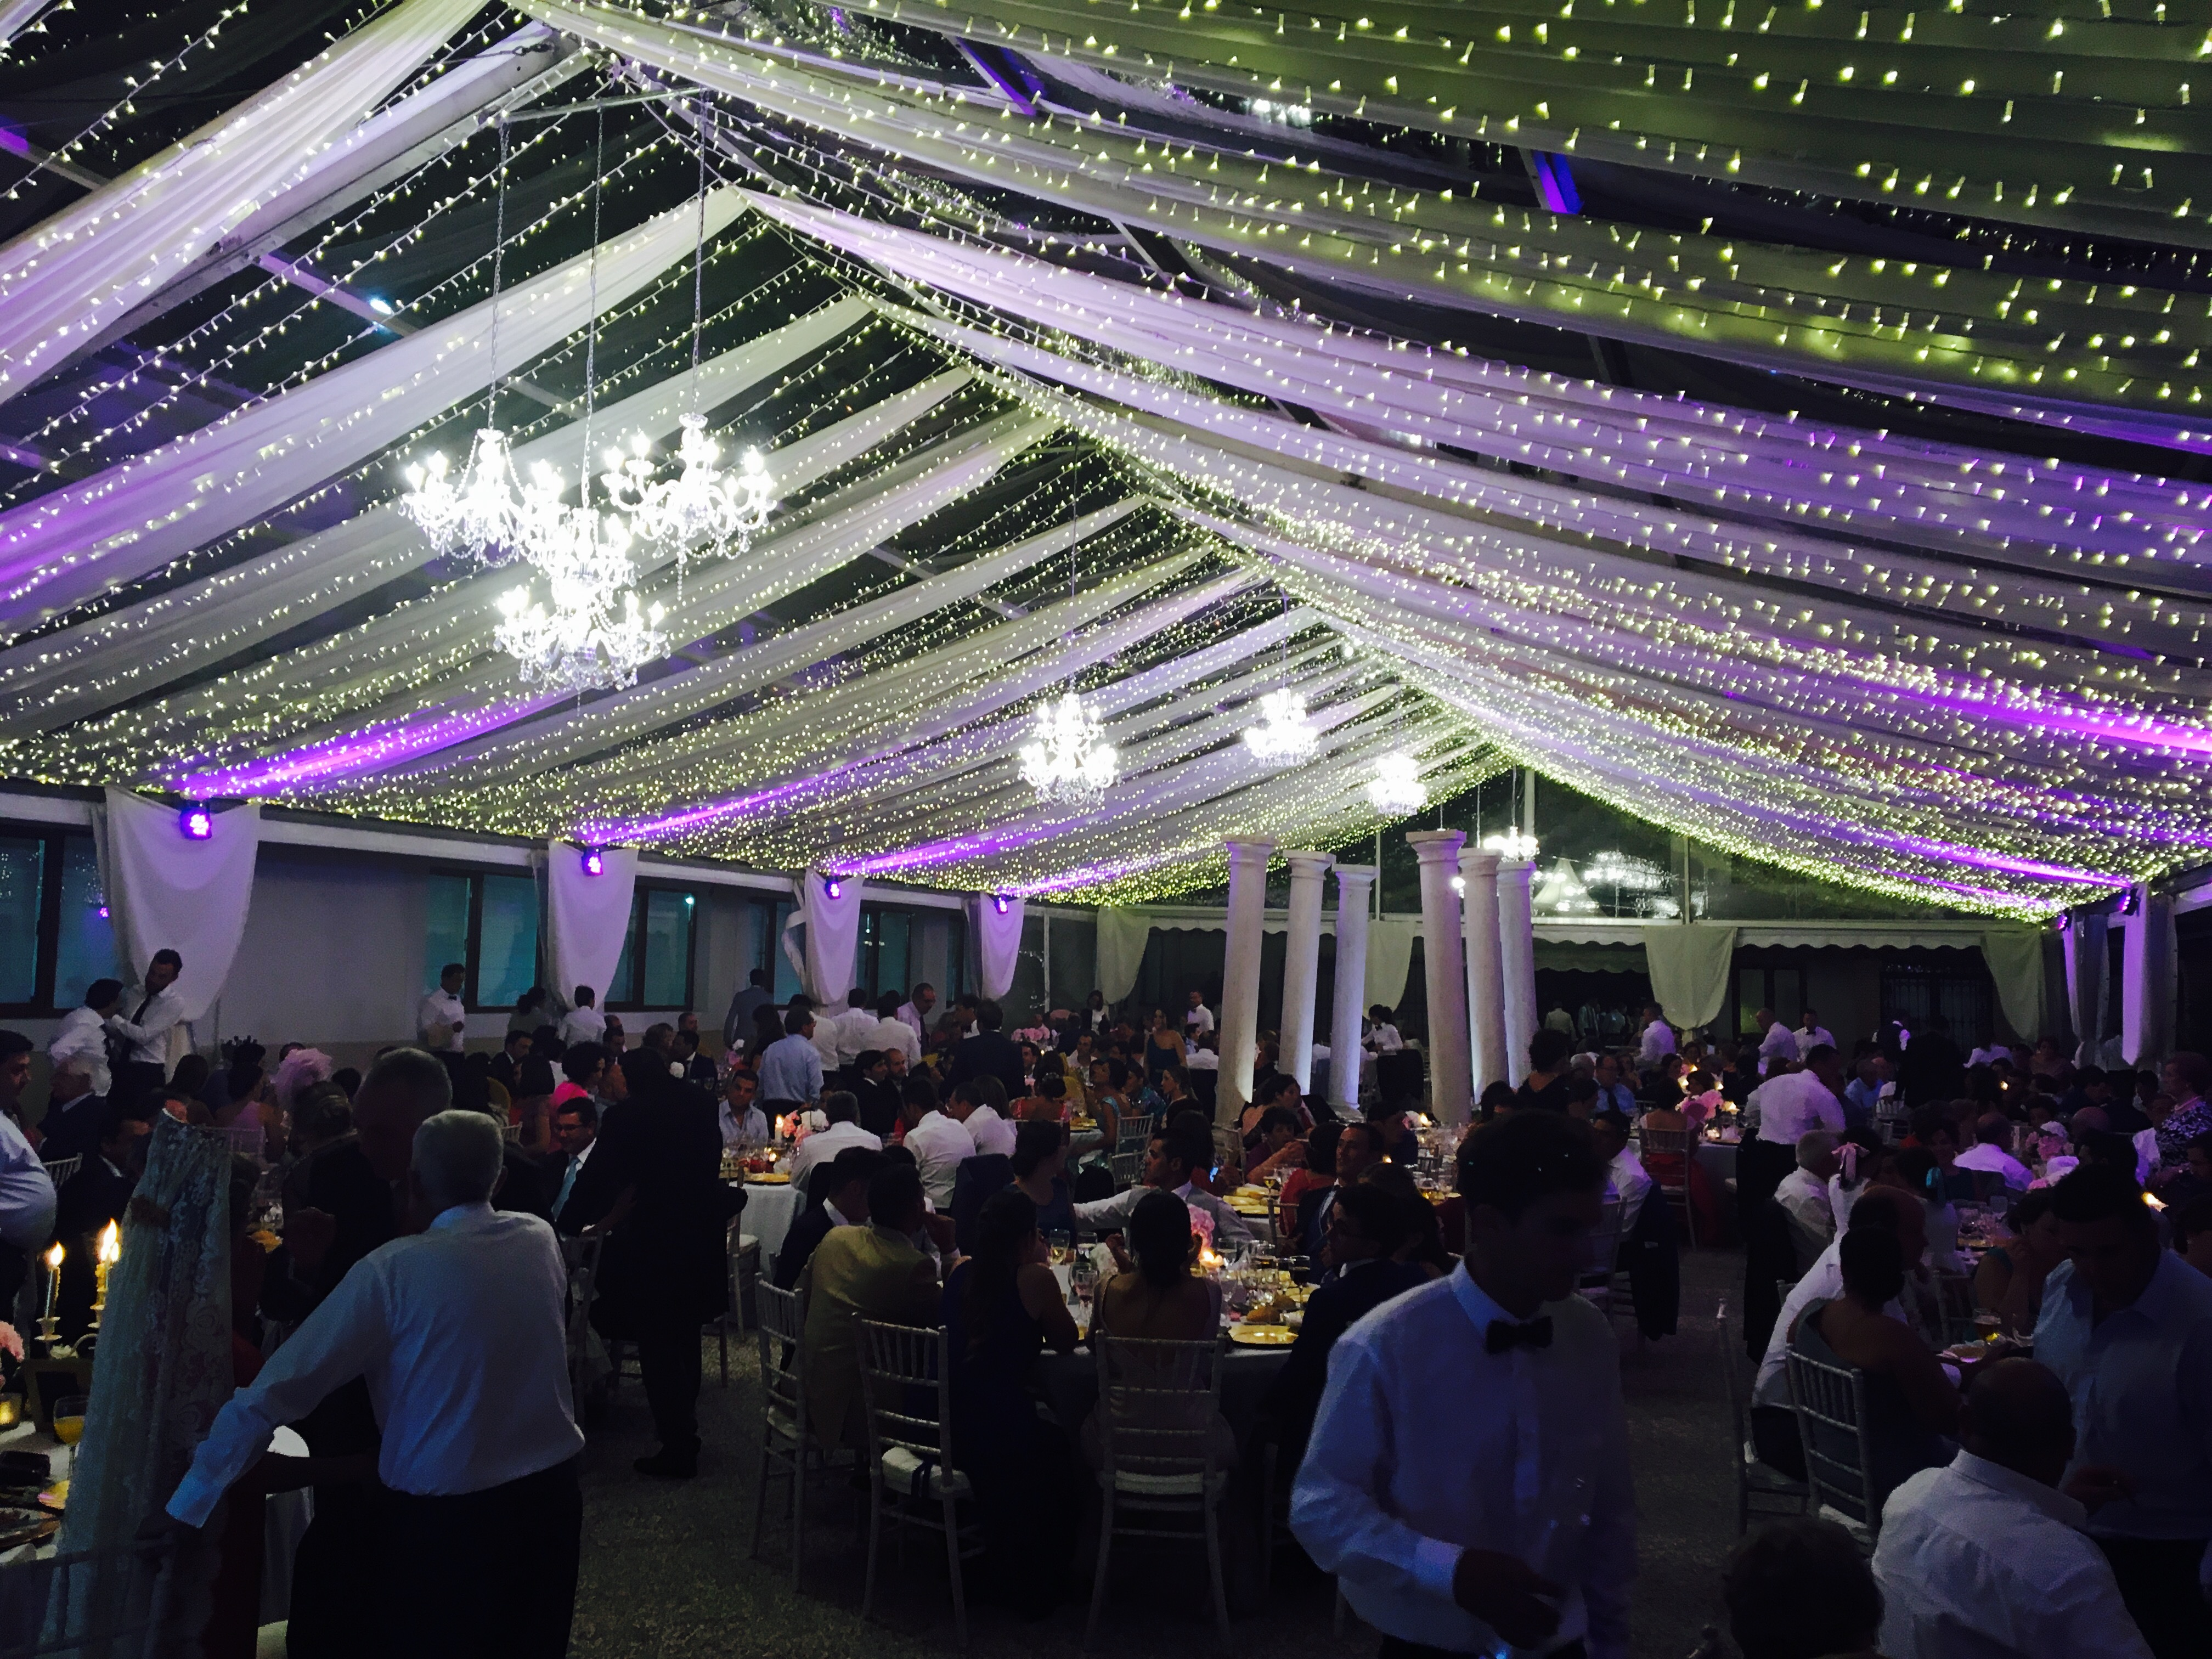 Fairy lights and chandeliers create a magical backdrop for evening celebrations